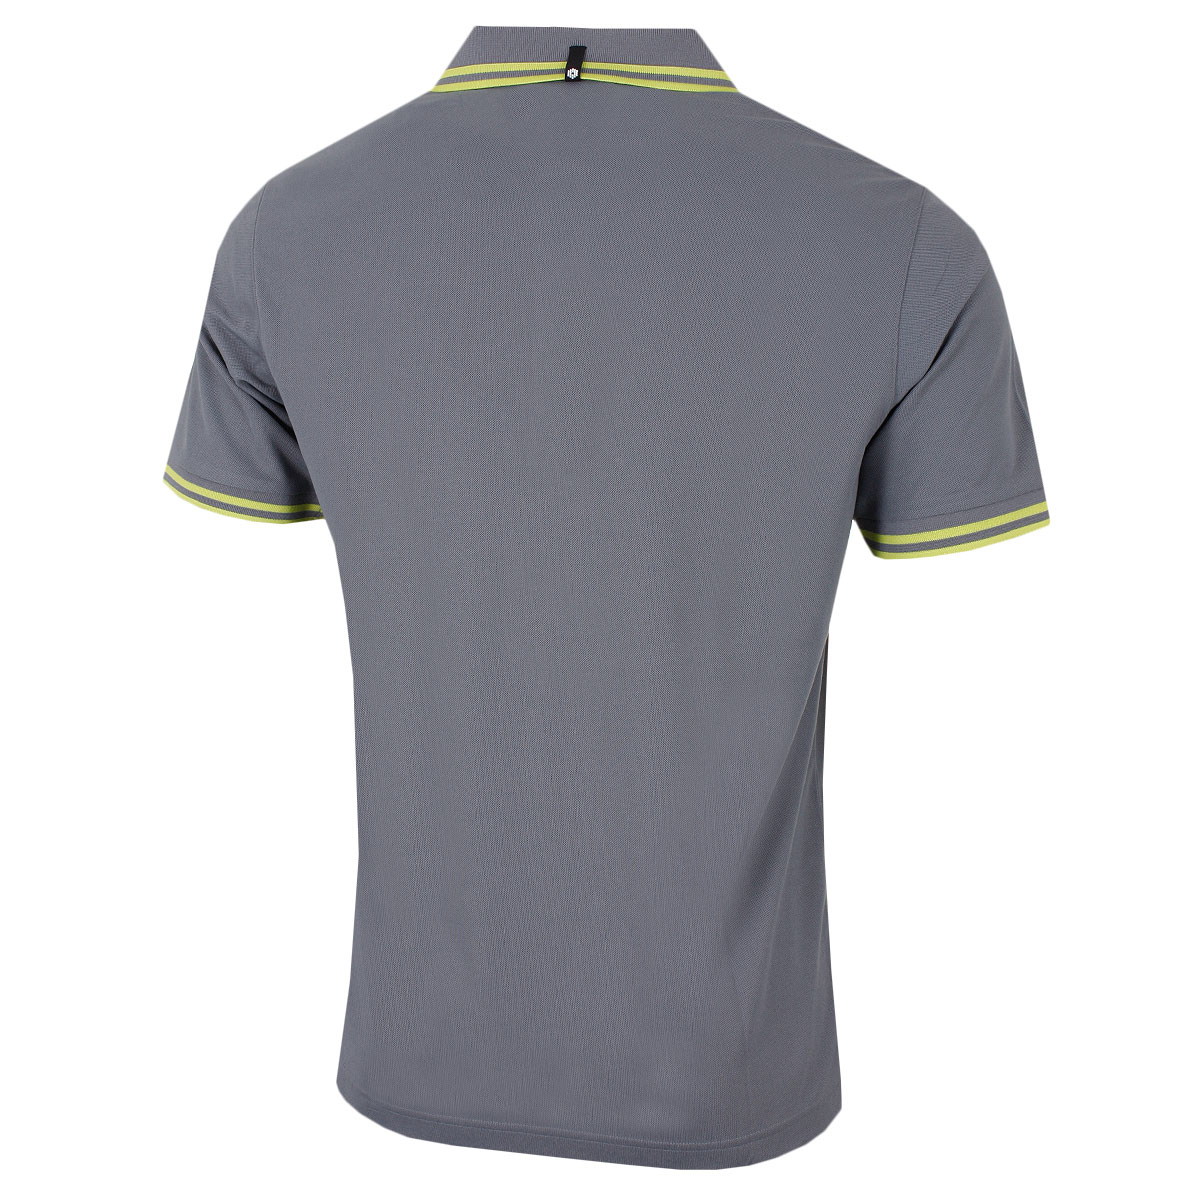 Puma-Golf-Mens-Pounce-Pique-dryCELL-Moisture-Wicking-Polo-Shirt-43-OFF-RRP thumbnail 17